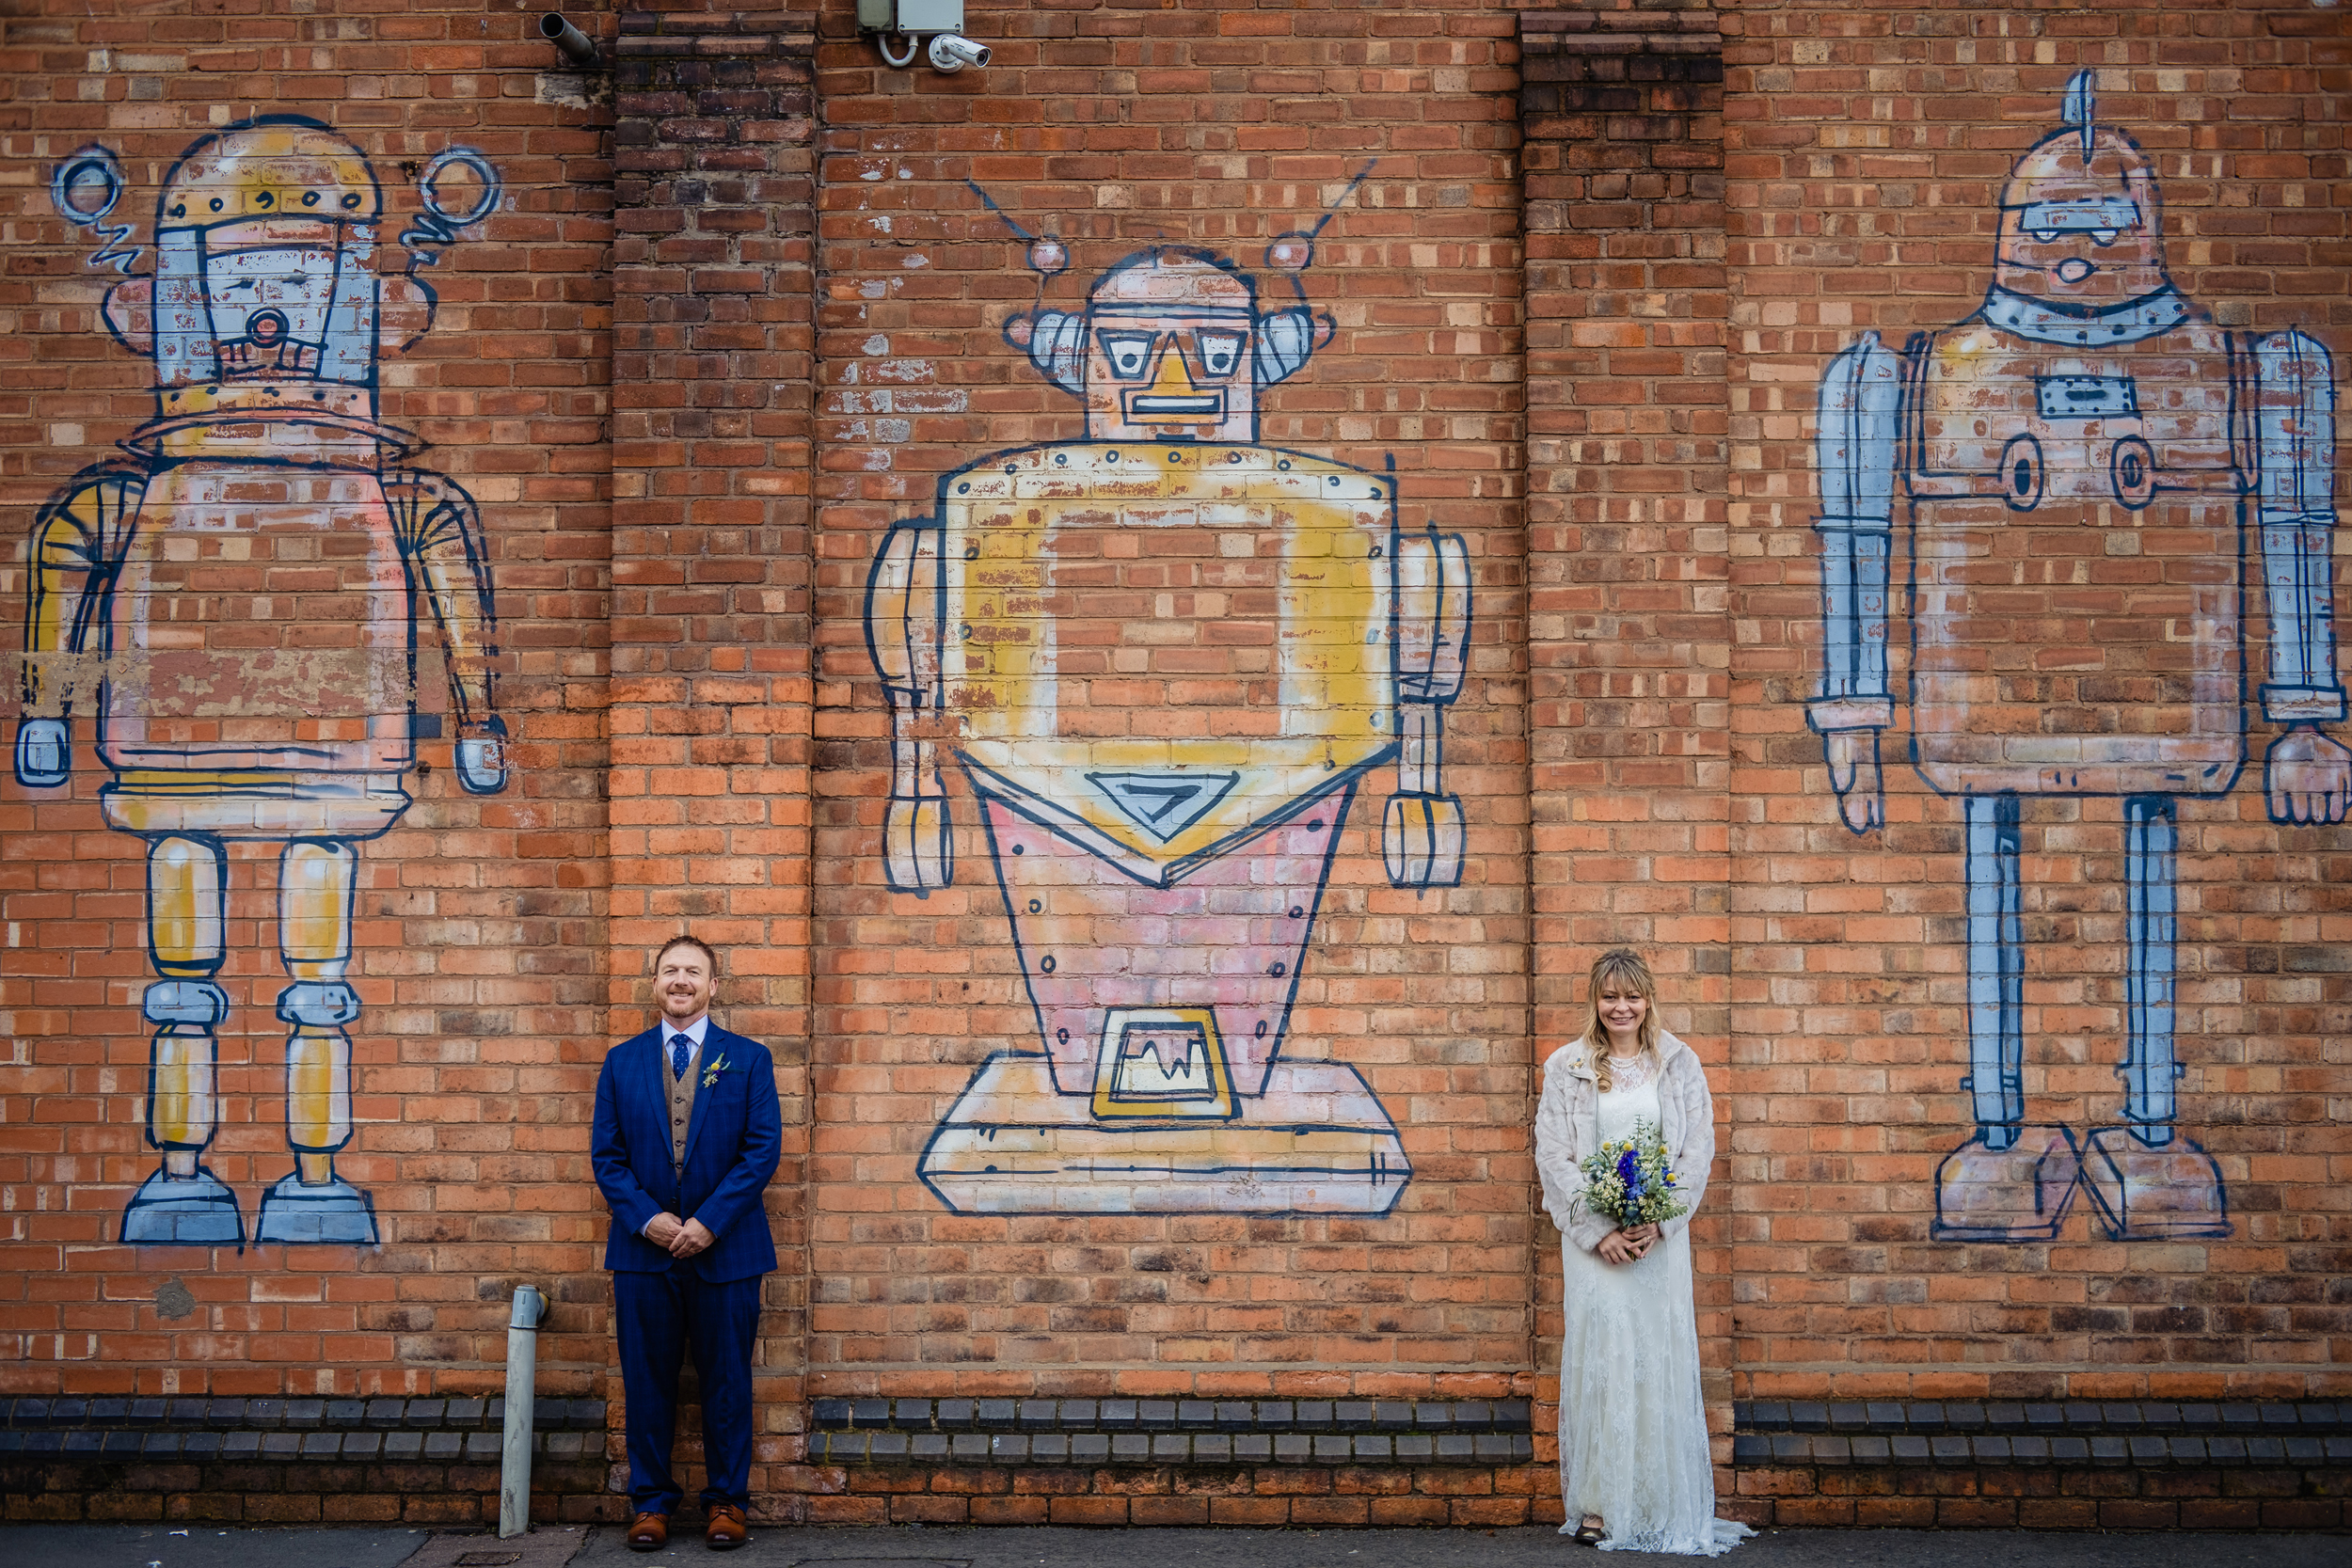 bride and groom pose for pictures in front of graffiti. birmingham wedding photography by emma and rich.